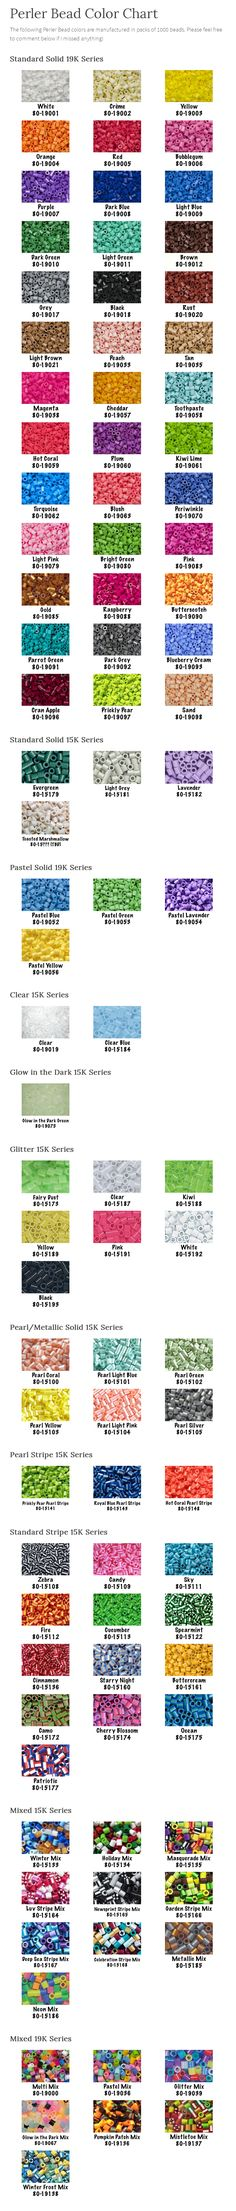 Perler Bead Color Chart by CraftyMe503 - *she'll be updating colours she missed, so the image above might not be up to date. But the link still takes you to her up to date colours list...